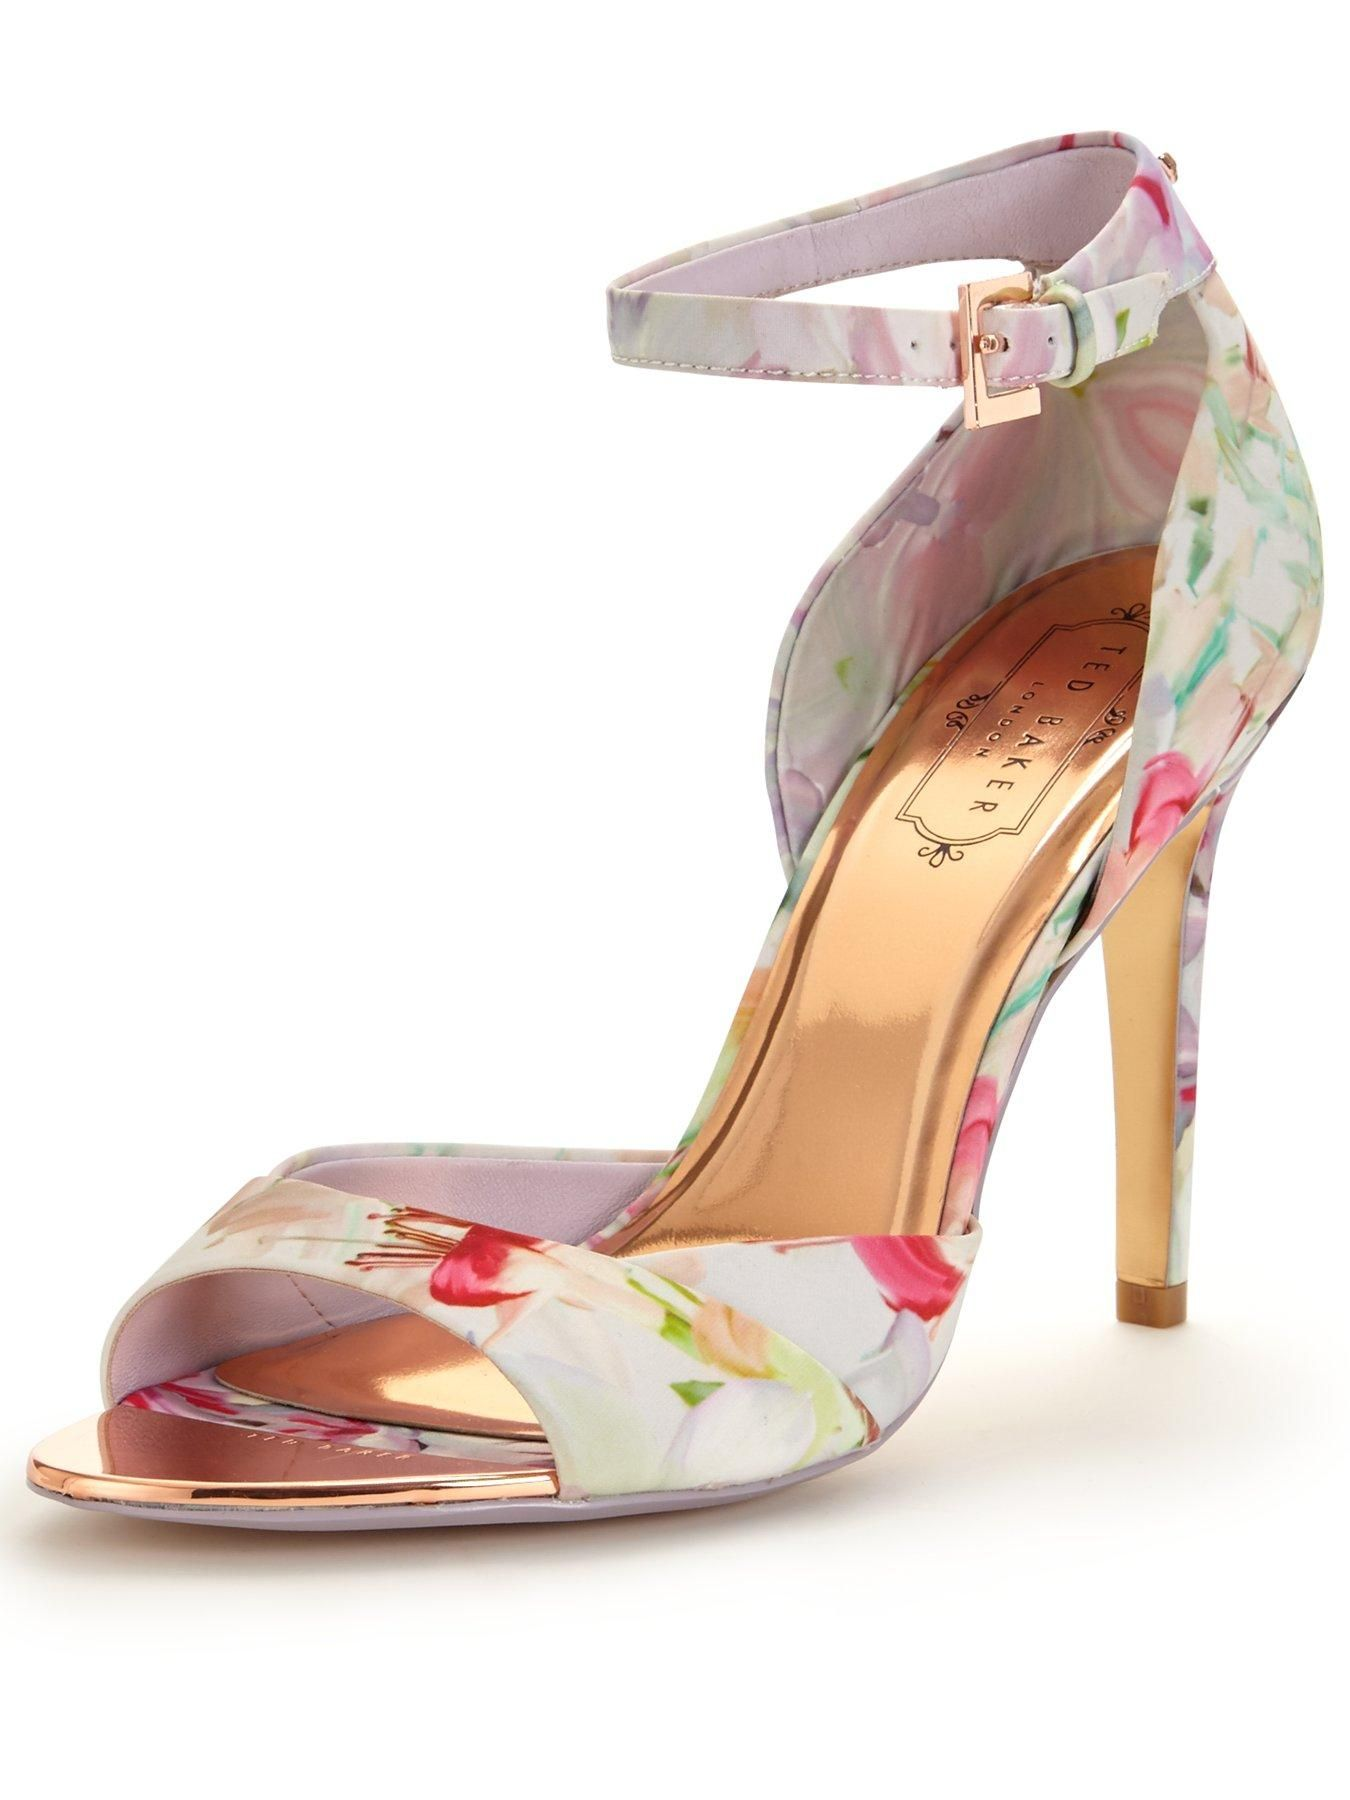 f1384207f73 Ted Baker Caleno Floral Heeled Sandal - Pink Step up your footwear game  just in time